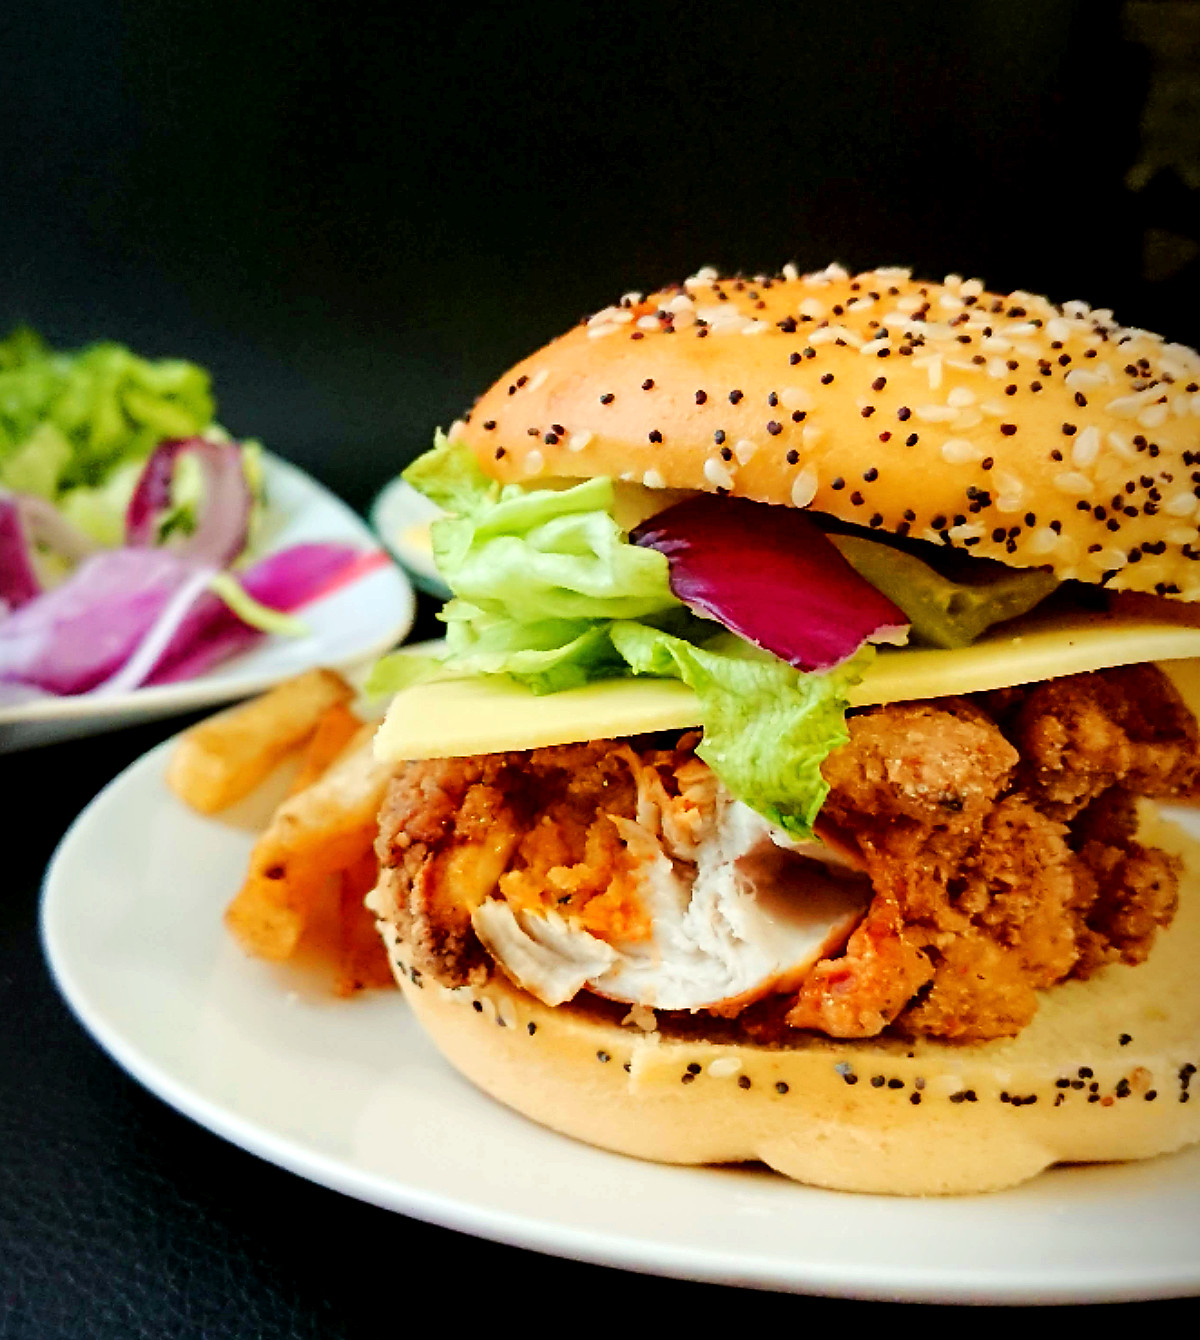 fried chicken burger with gluten free bun on a plate